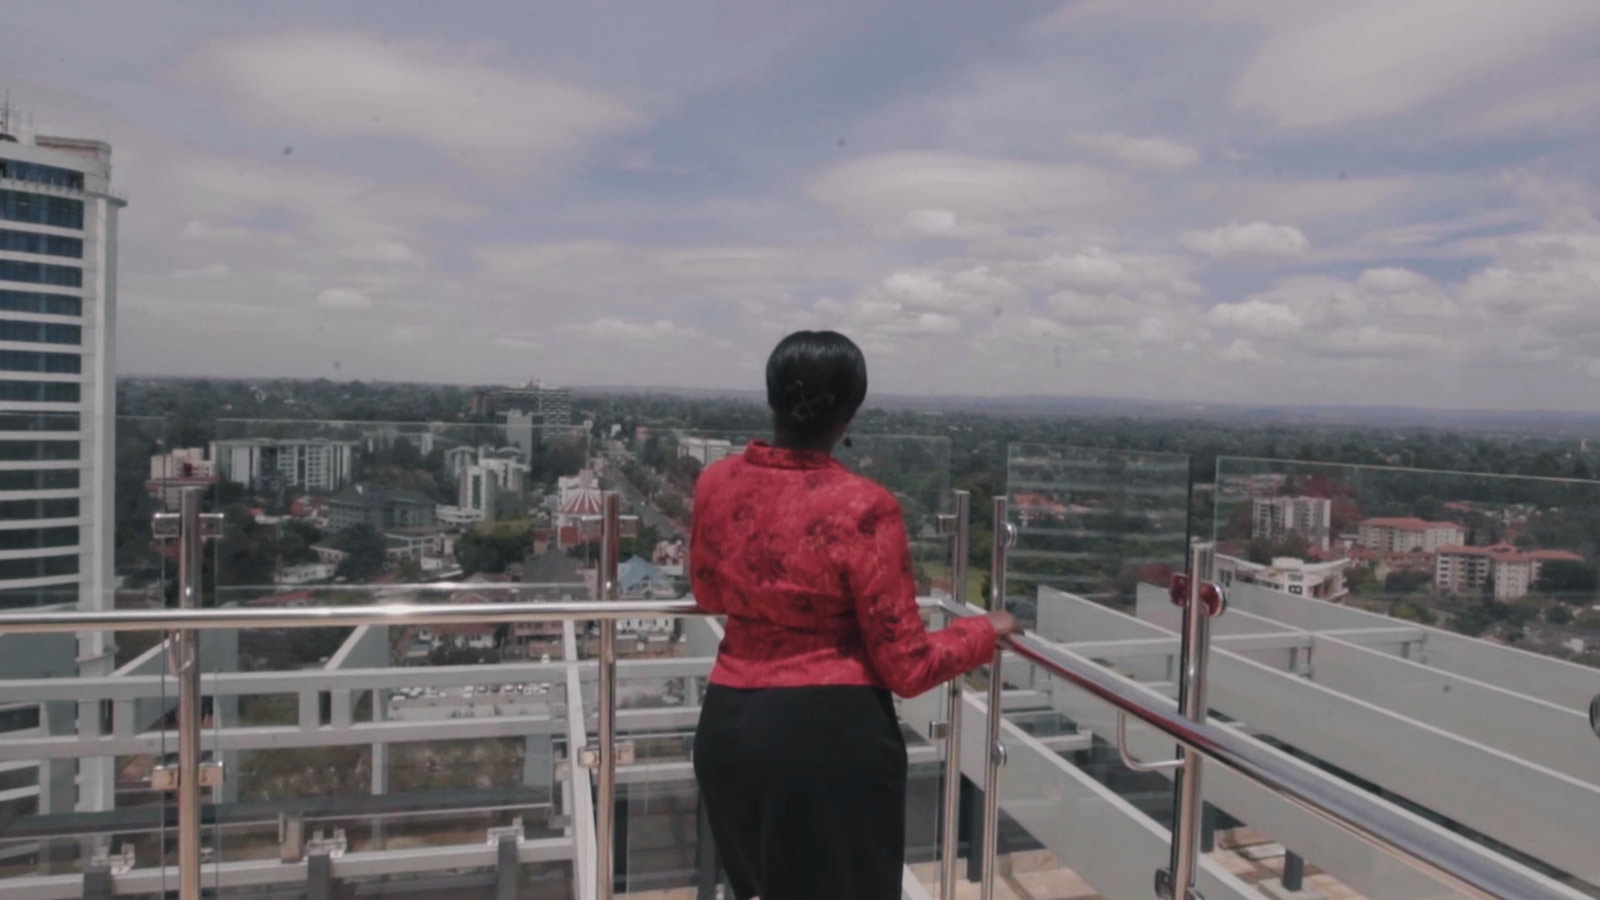 Video still - looking out over the city from Sanlam Tower viewing deck